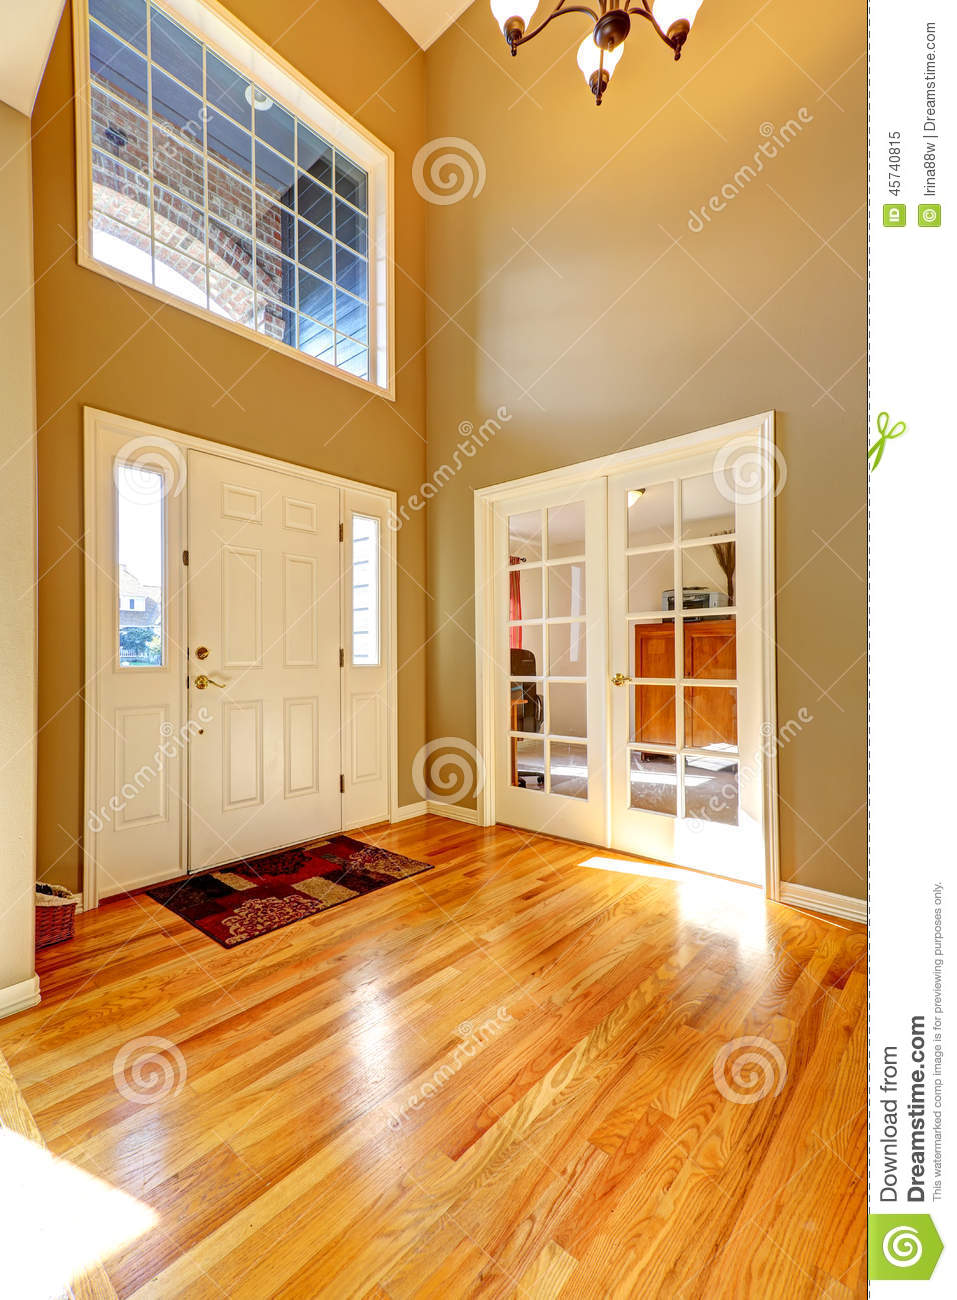 Image Result For House Entrance Foyer Ideas